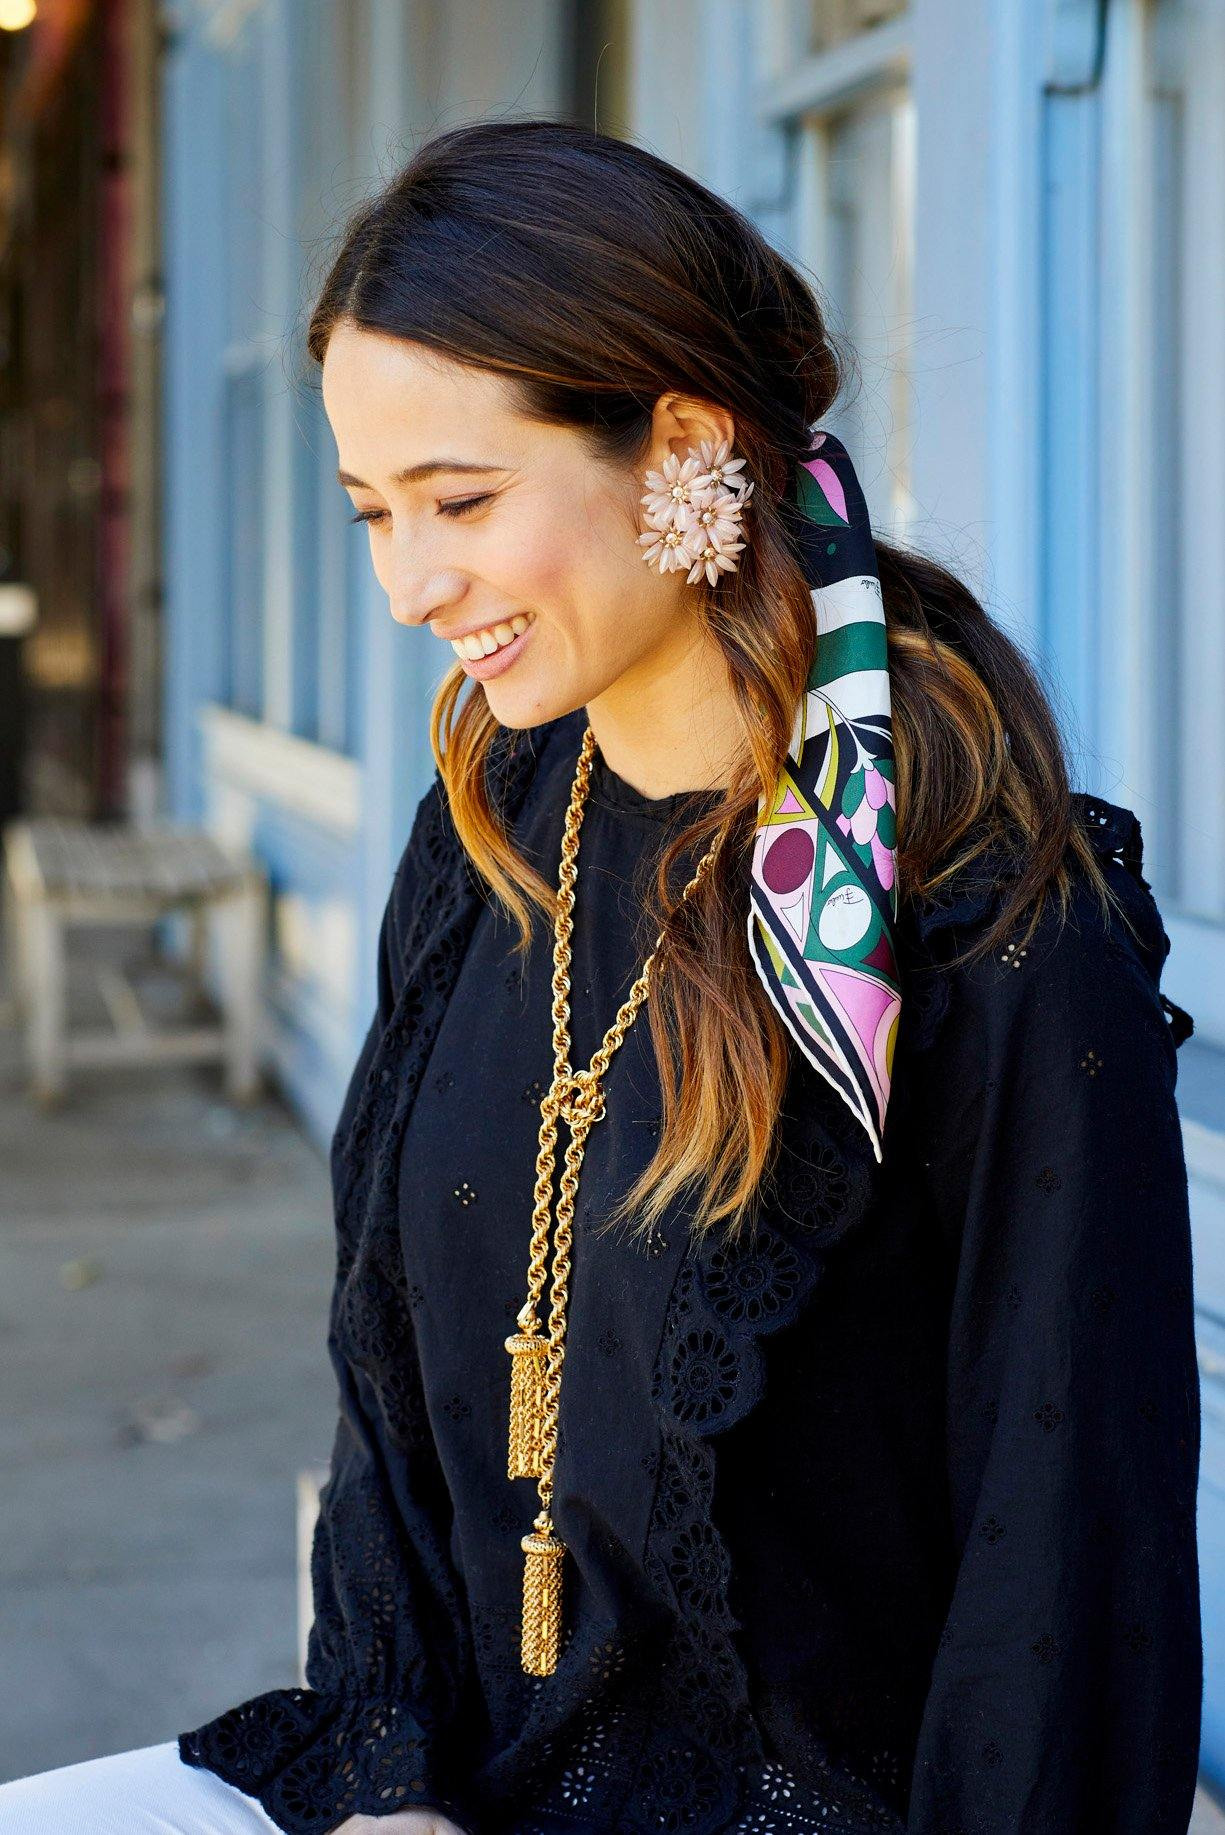 Oversized Pink Floral Clip-on Earrings